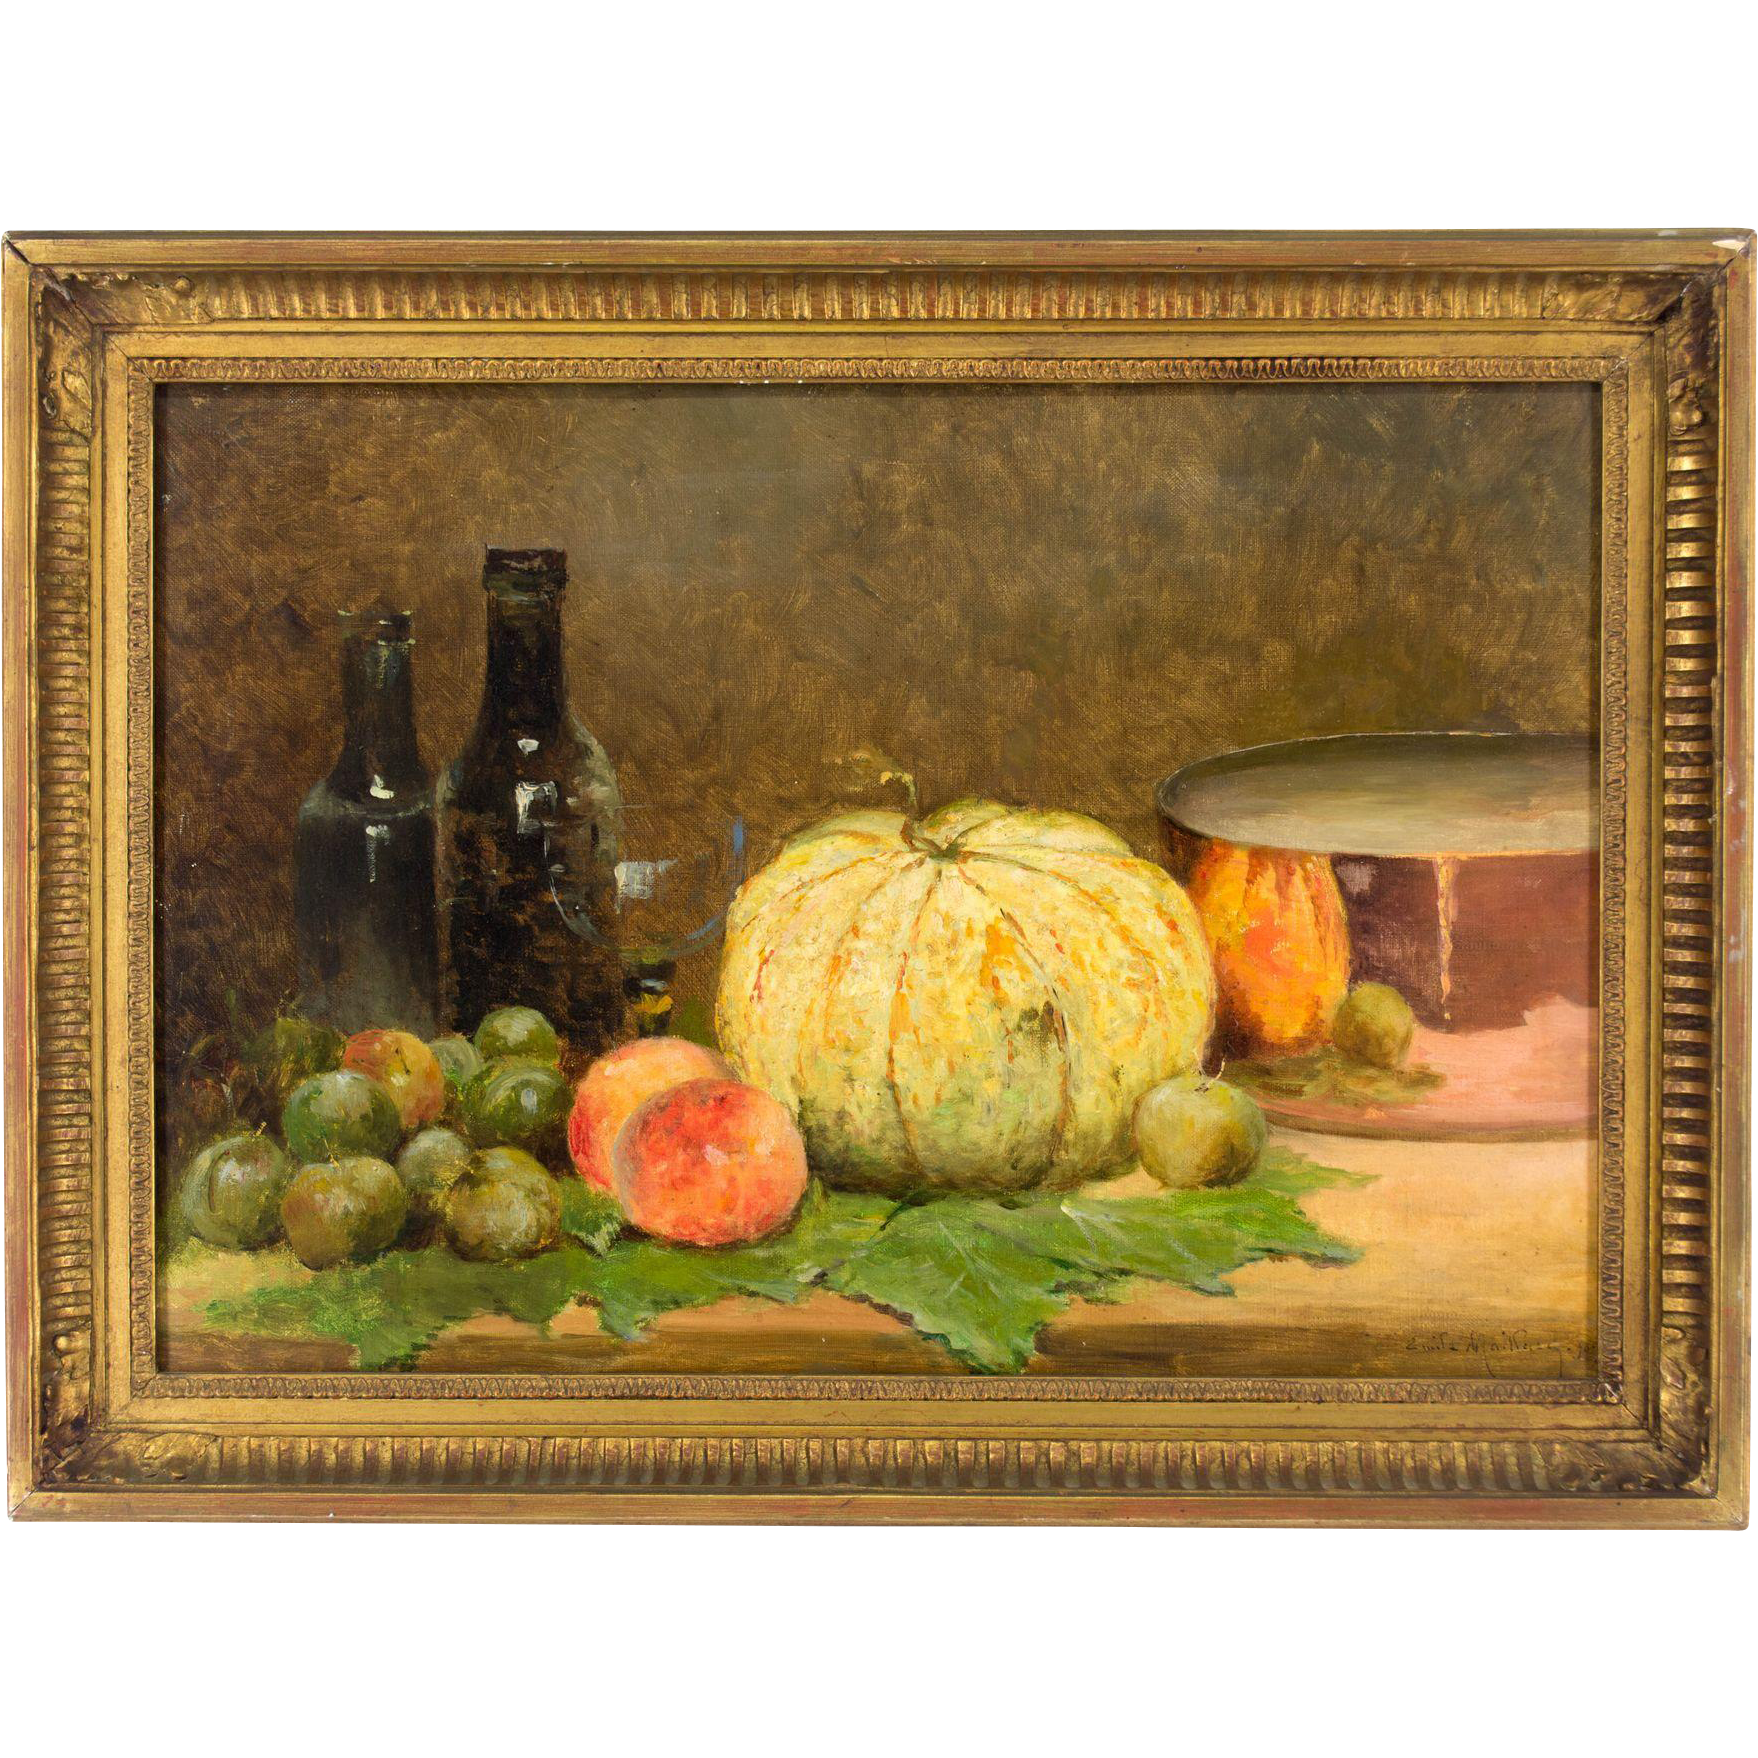 19th Century French School Painting